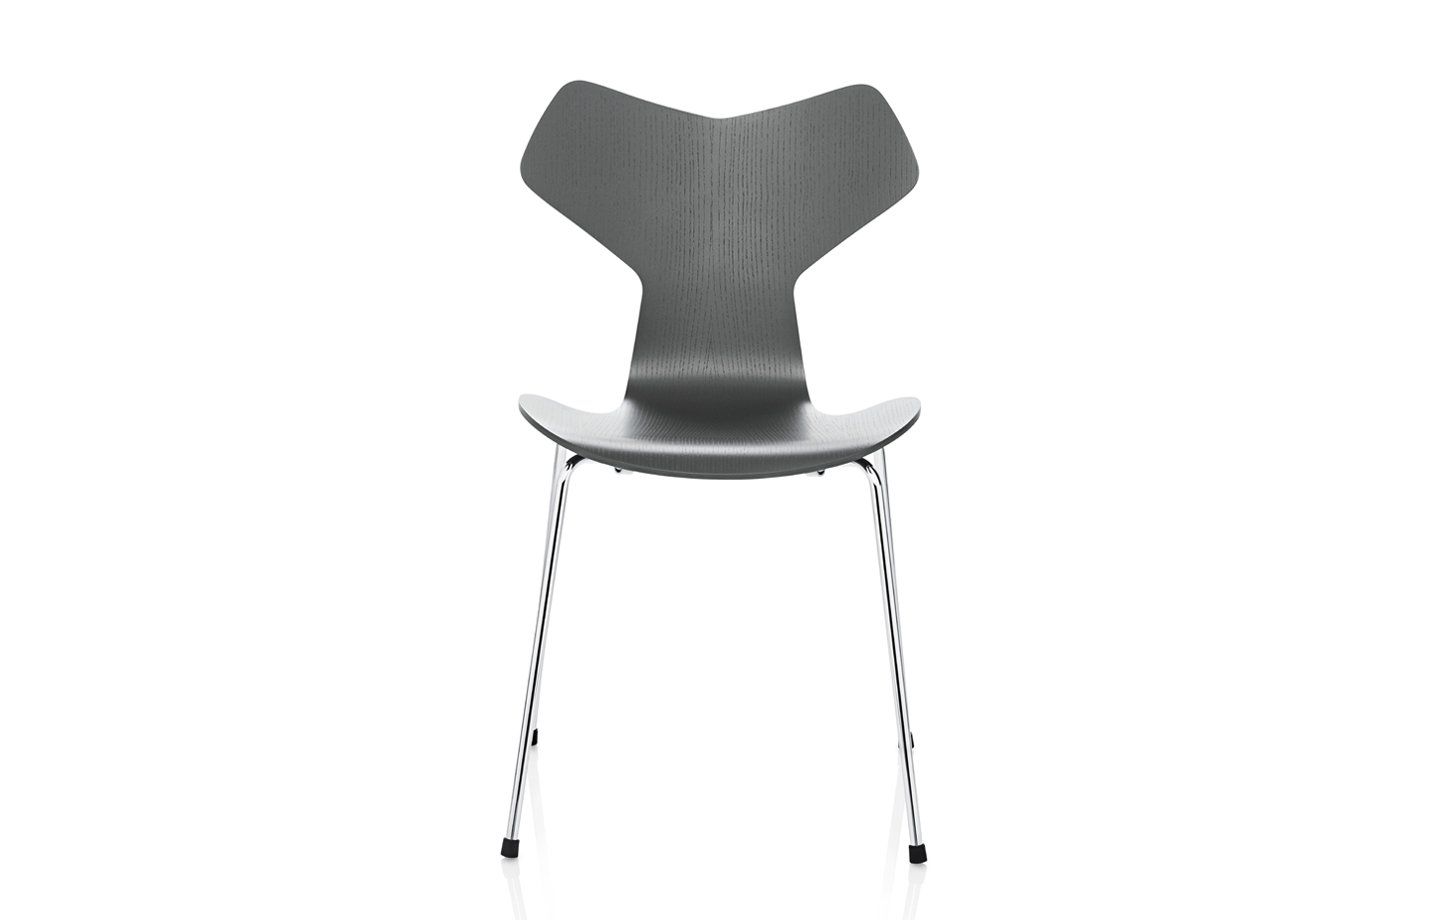 Grand prix chair – Grey